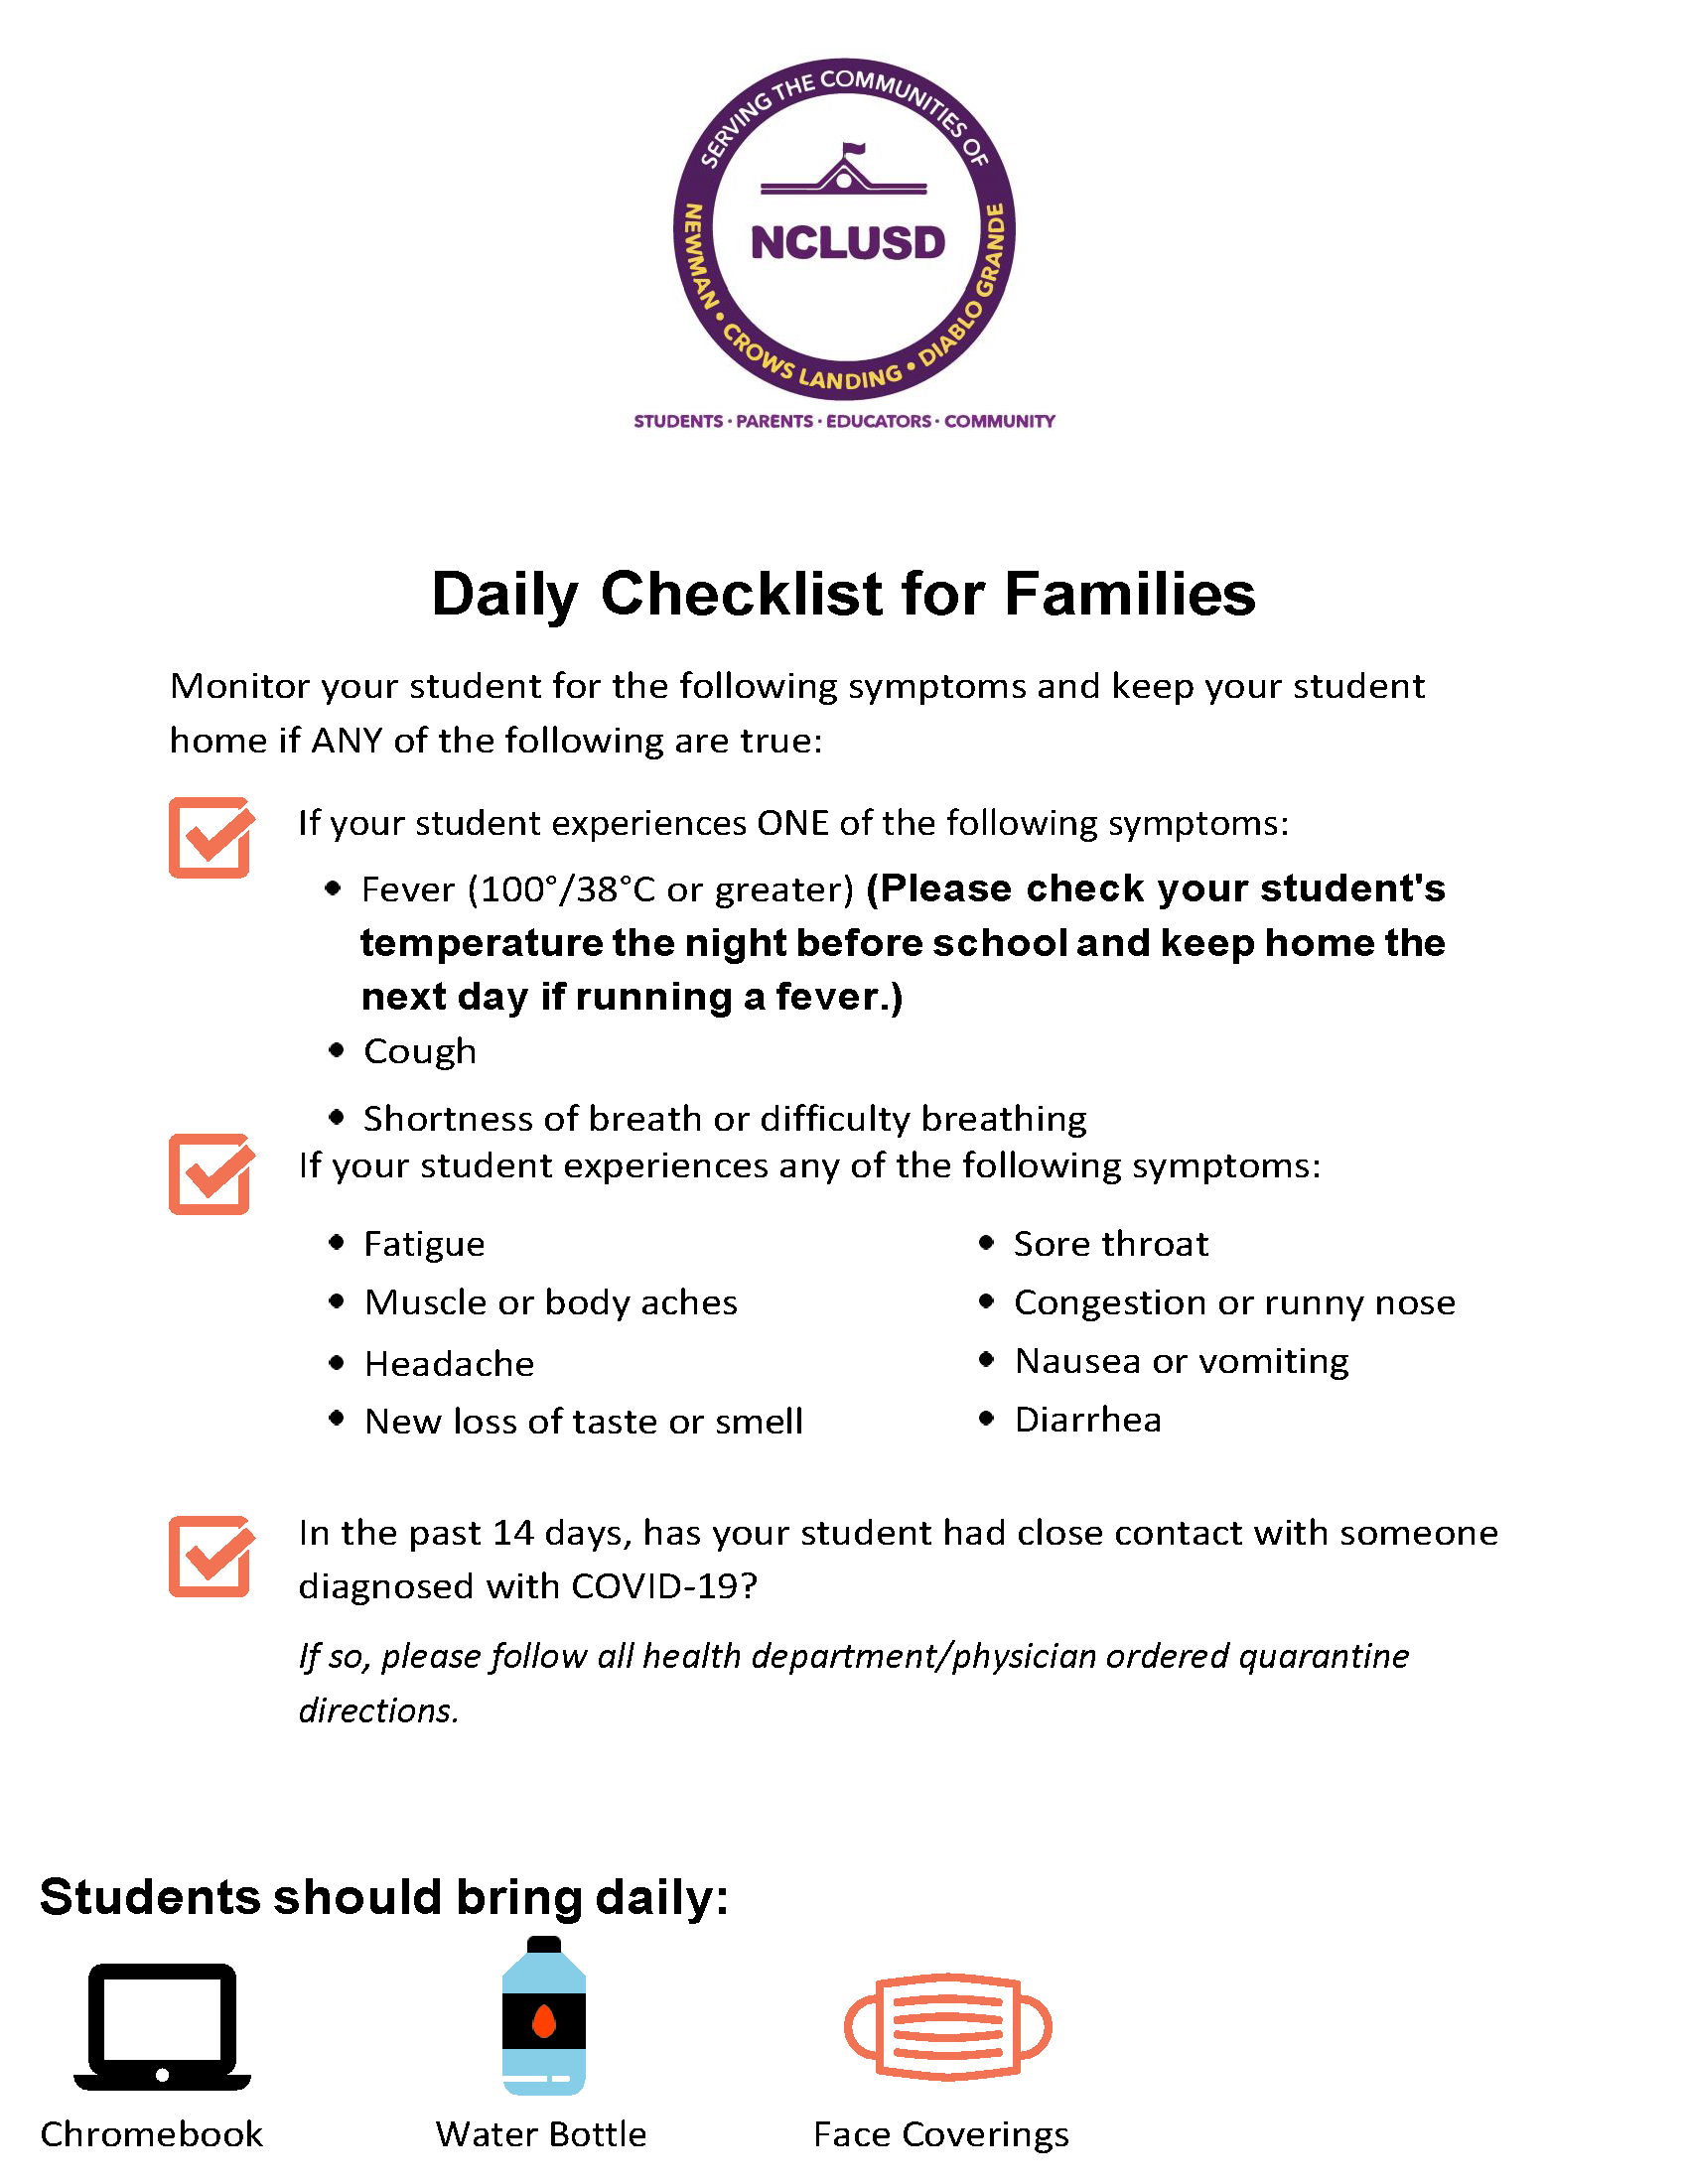 Daily Checklist for Families